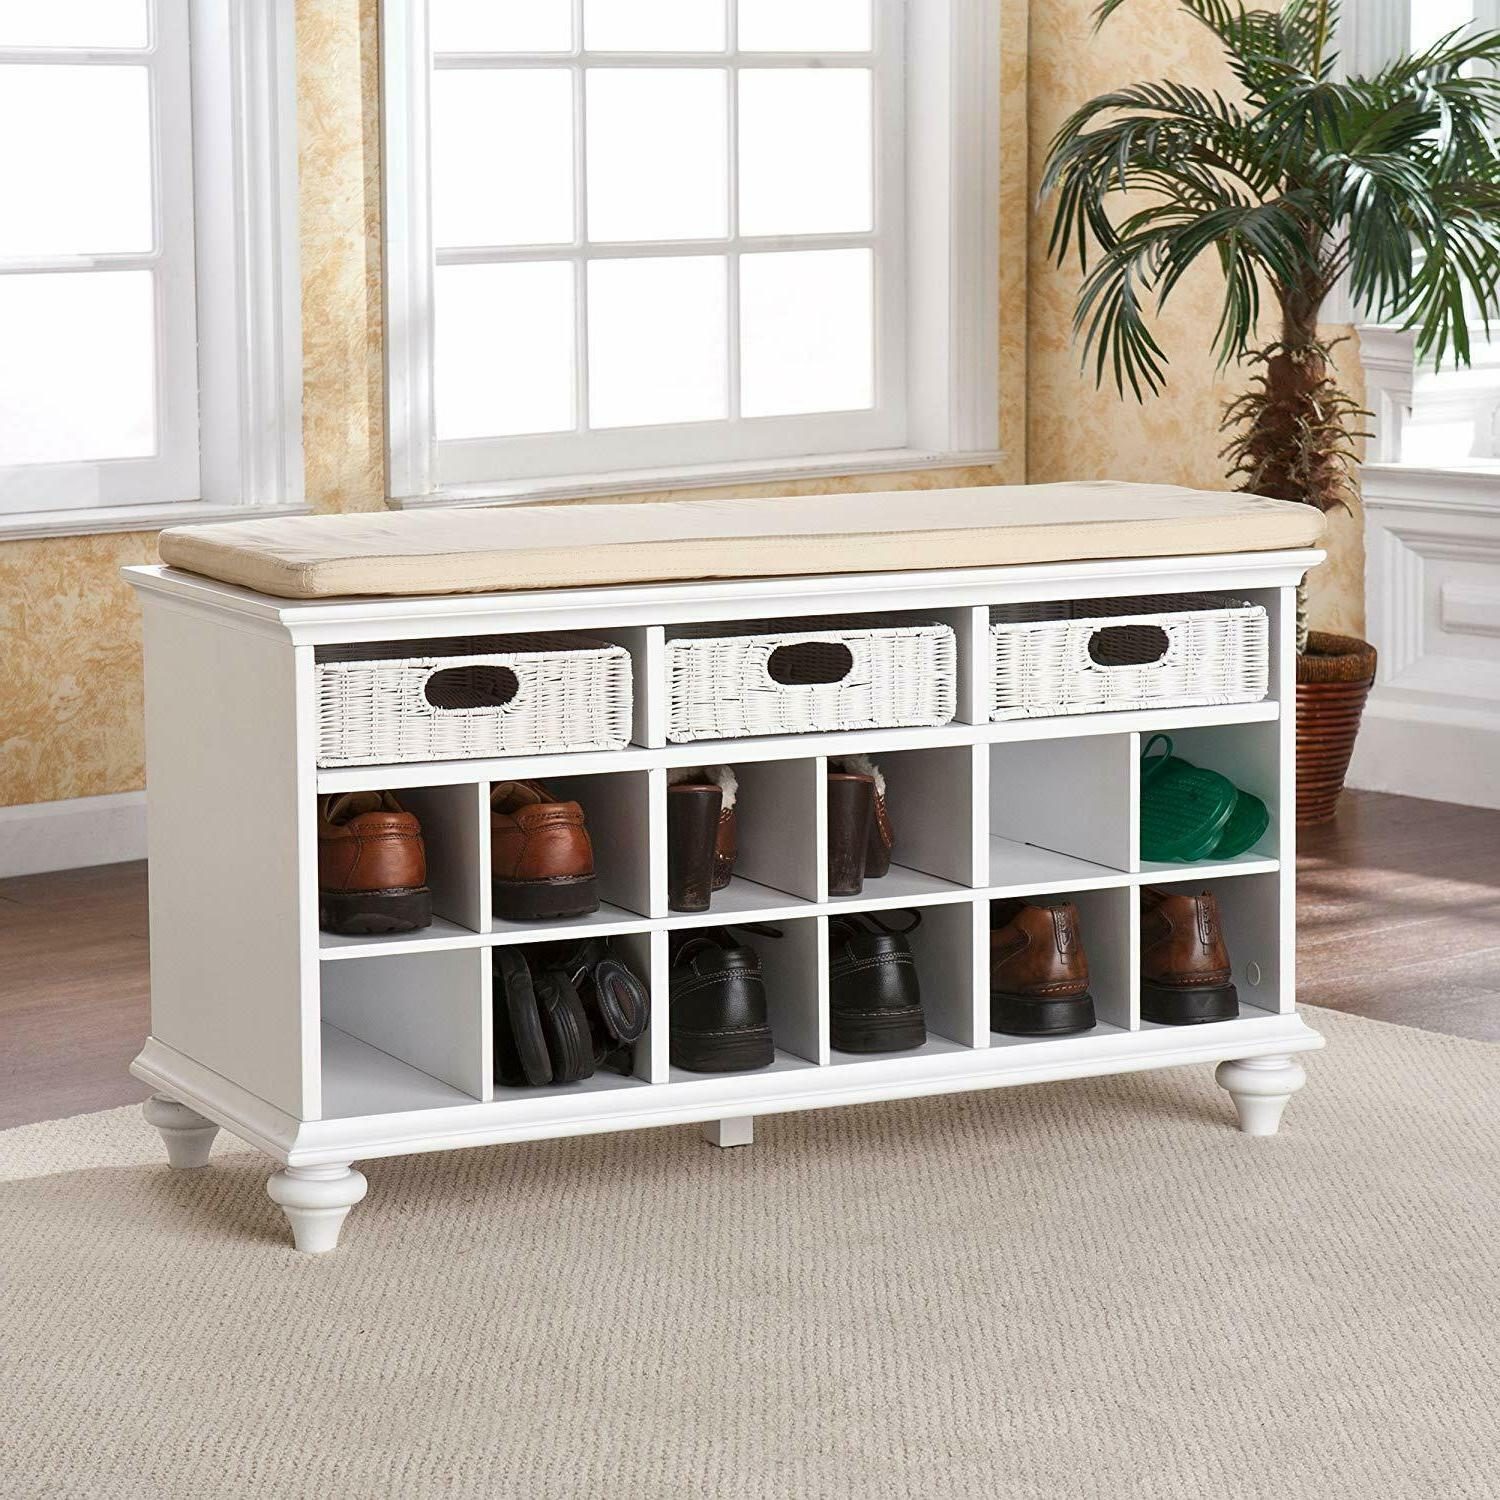 Entryway Shoe Storage Bench 3 Baskets Drawers White Cubby Or